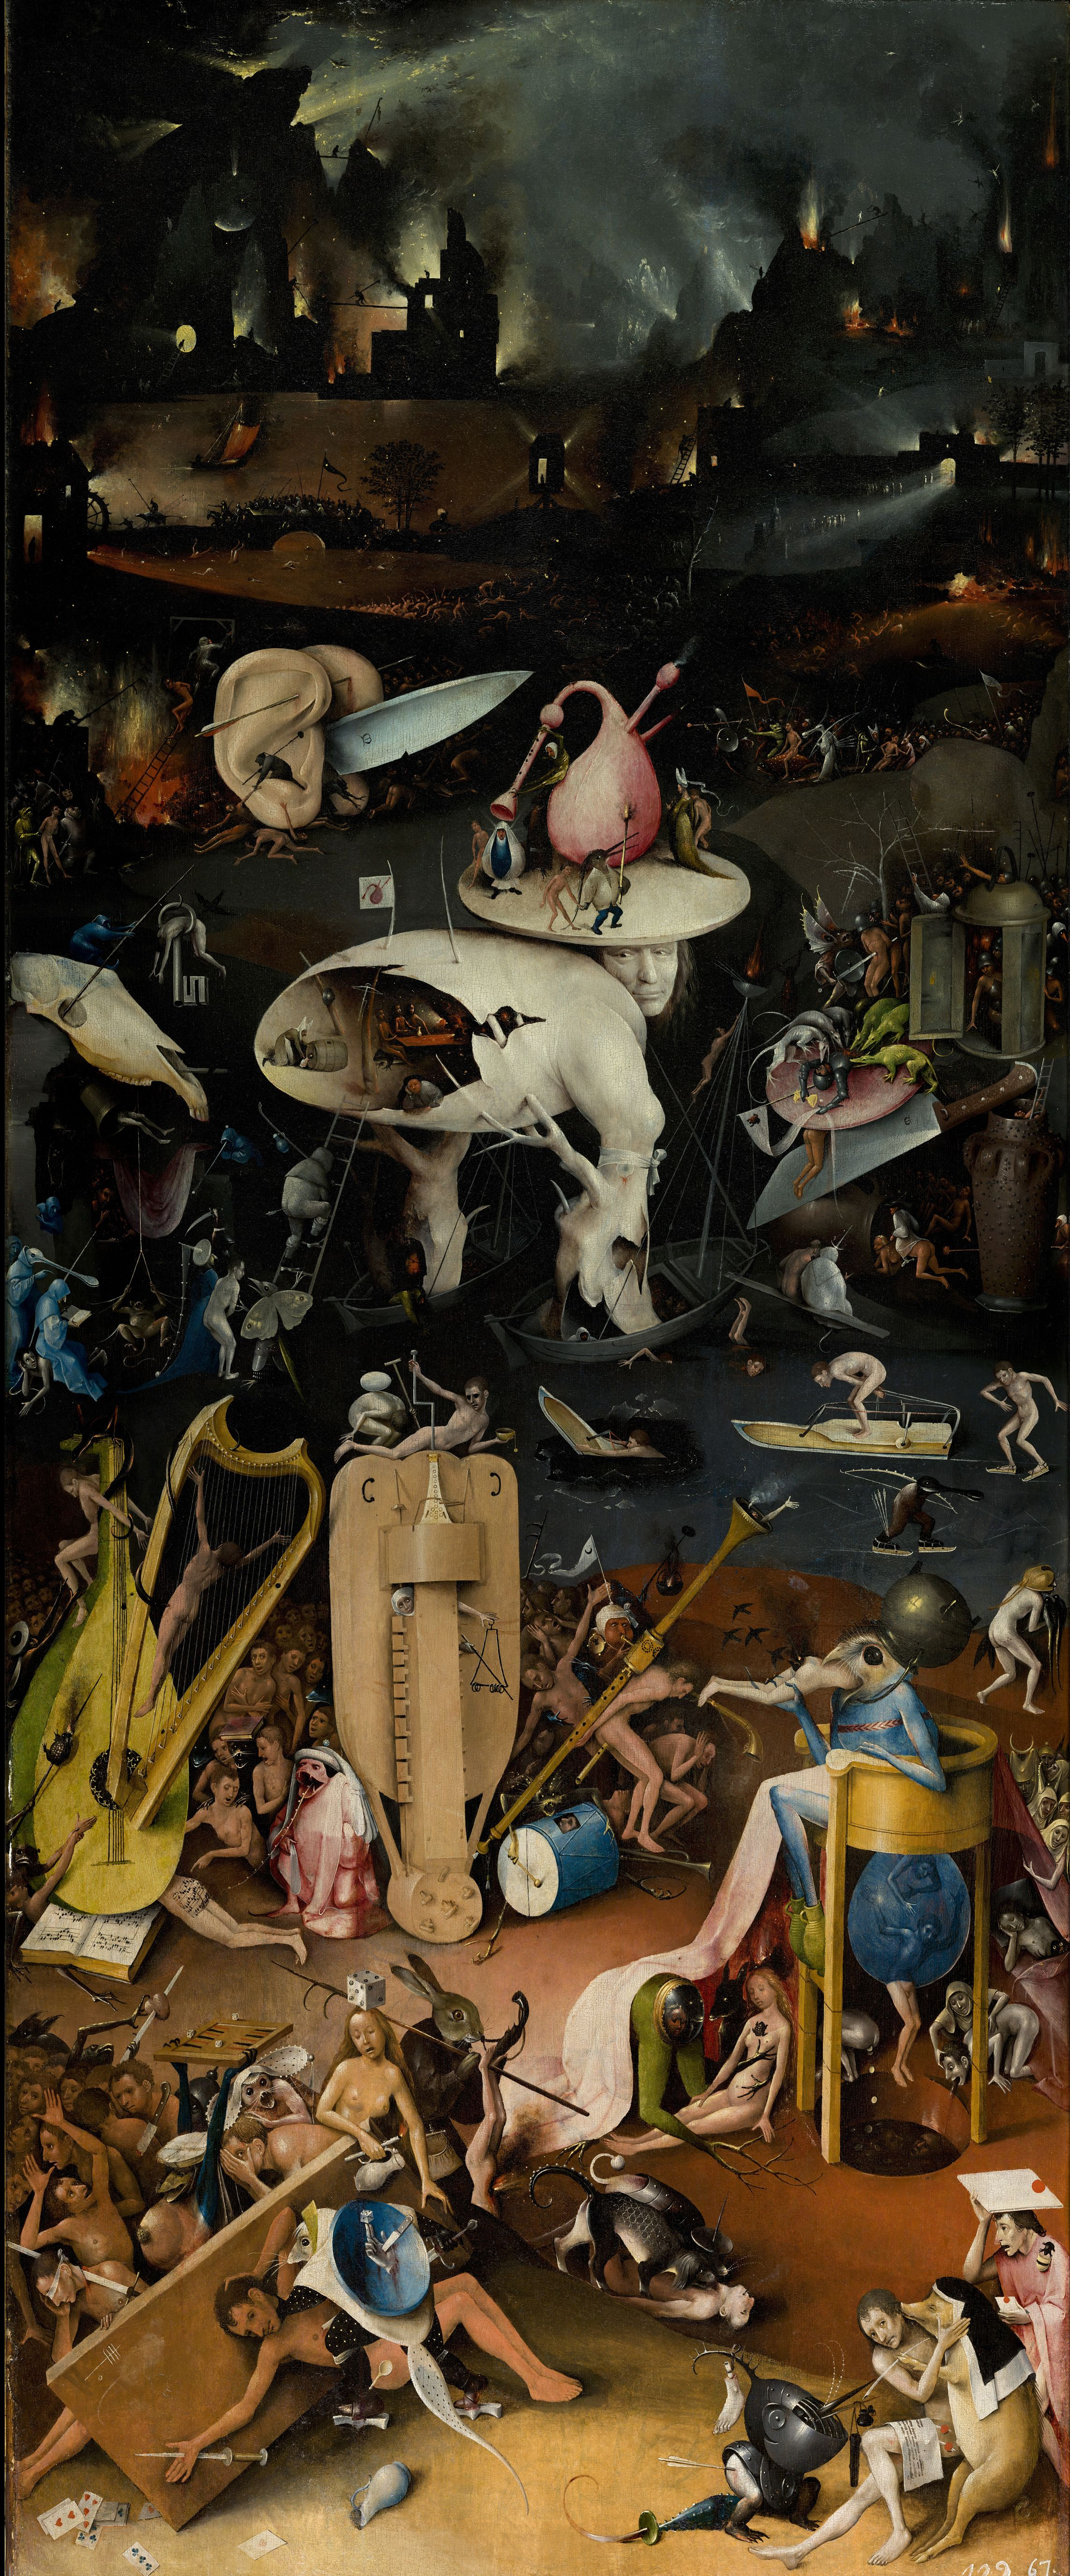 Hieronymus Bosch. The garden of earthly delights. Music Hell. Right wing.